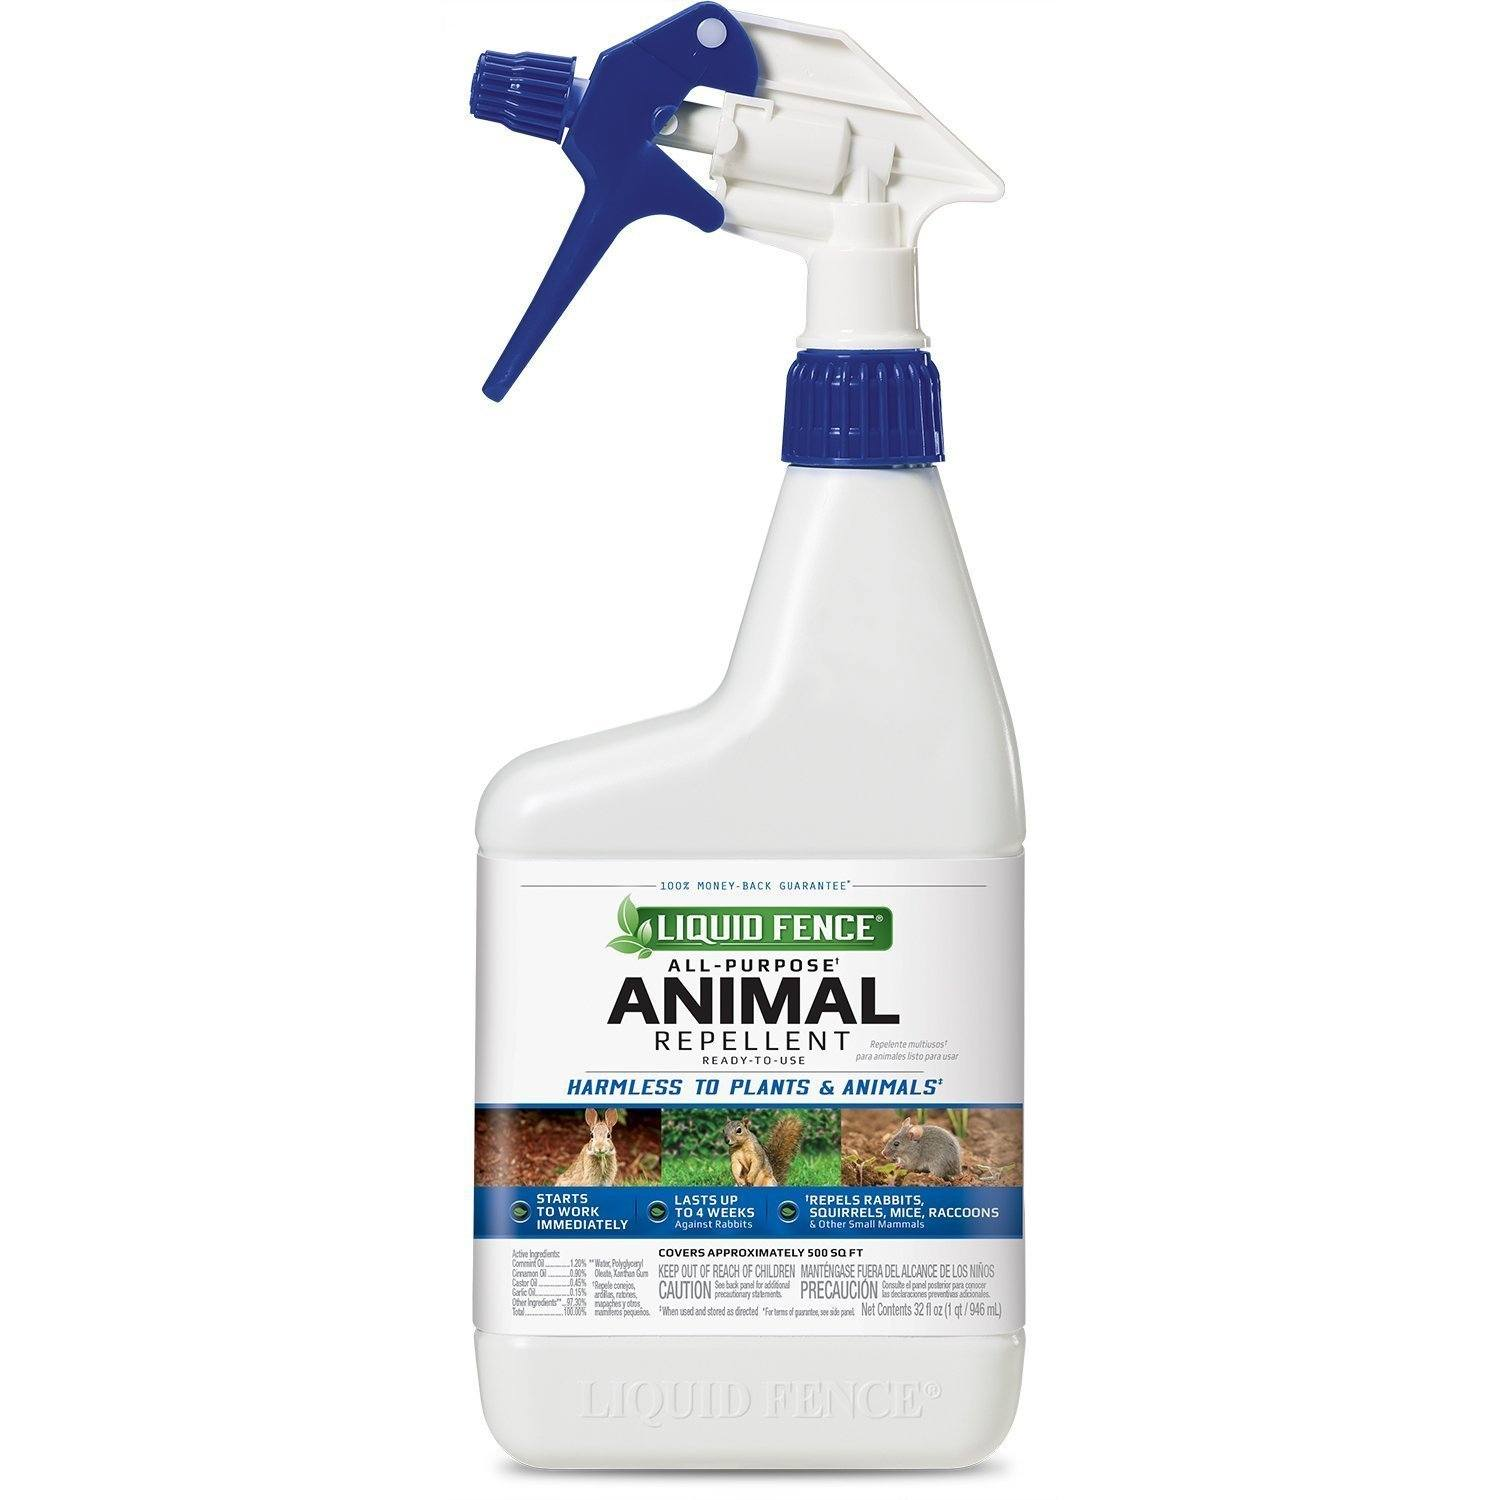 Goose Repellent 9 Best selling Repellent Reviews 2018 PestWiki